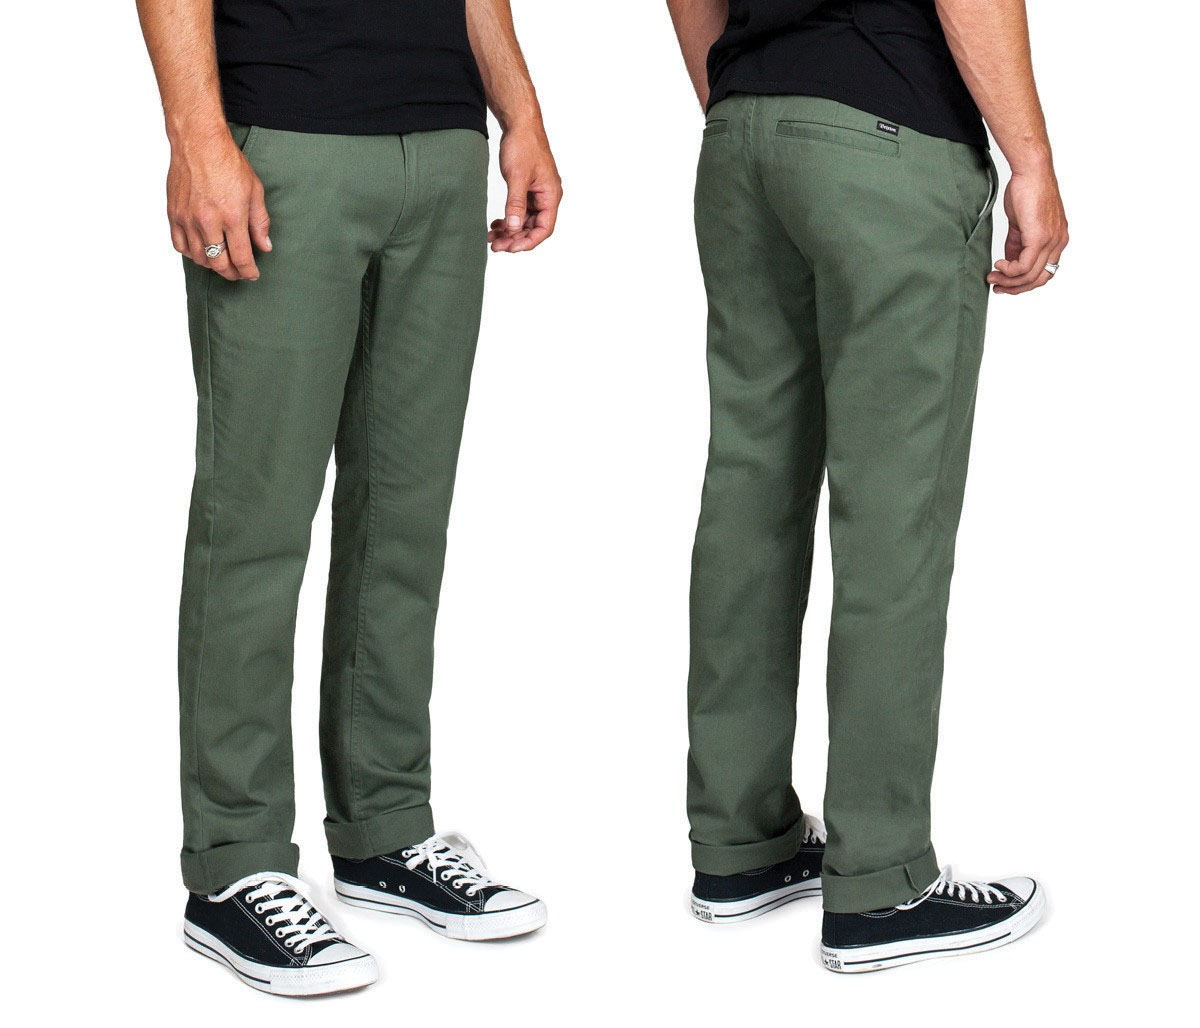 Grain Slim Fit Chino Pants by Brixton- CYPRESS - SALE sz 28 only